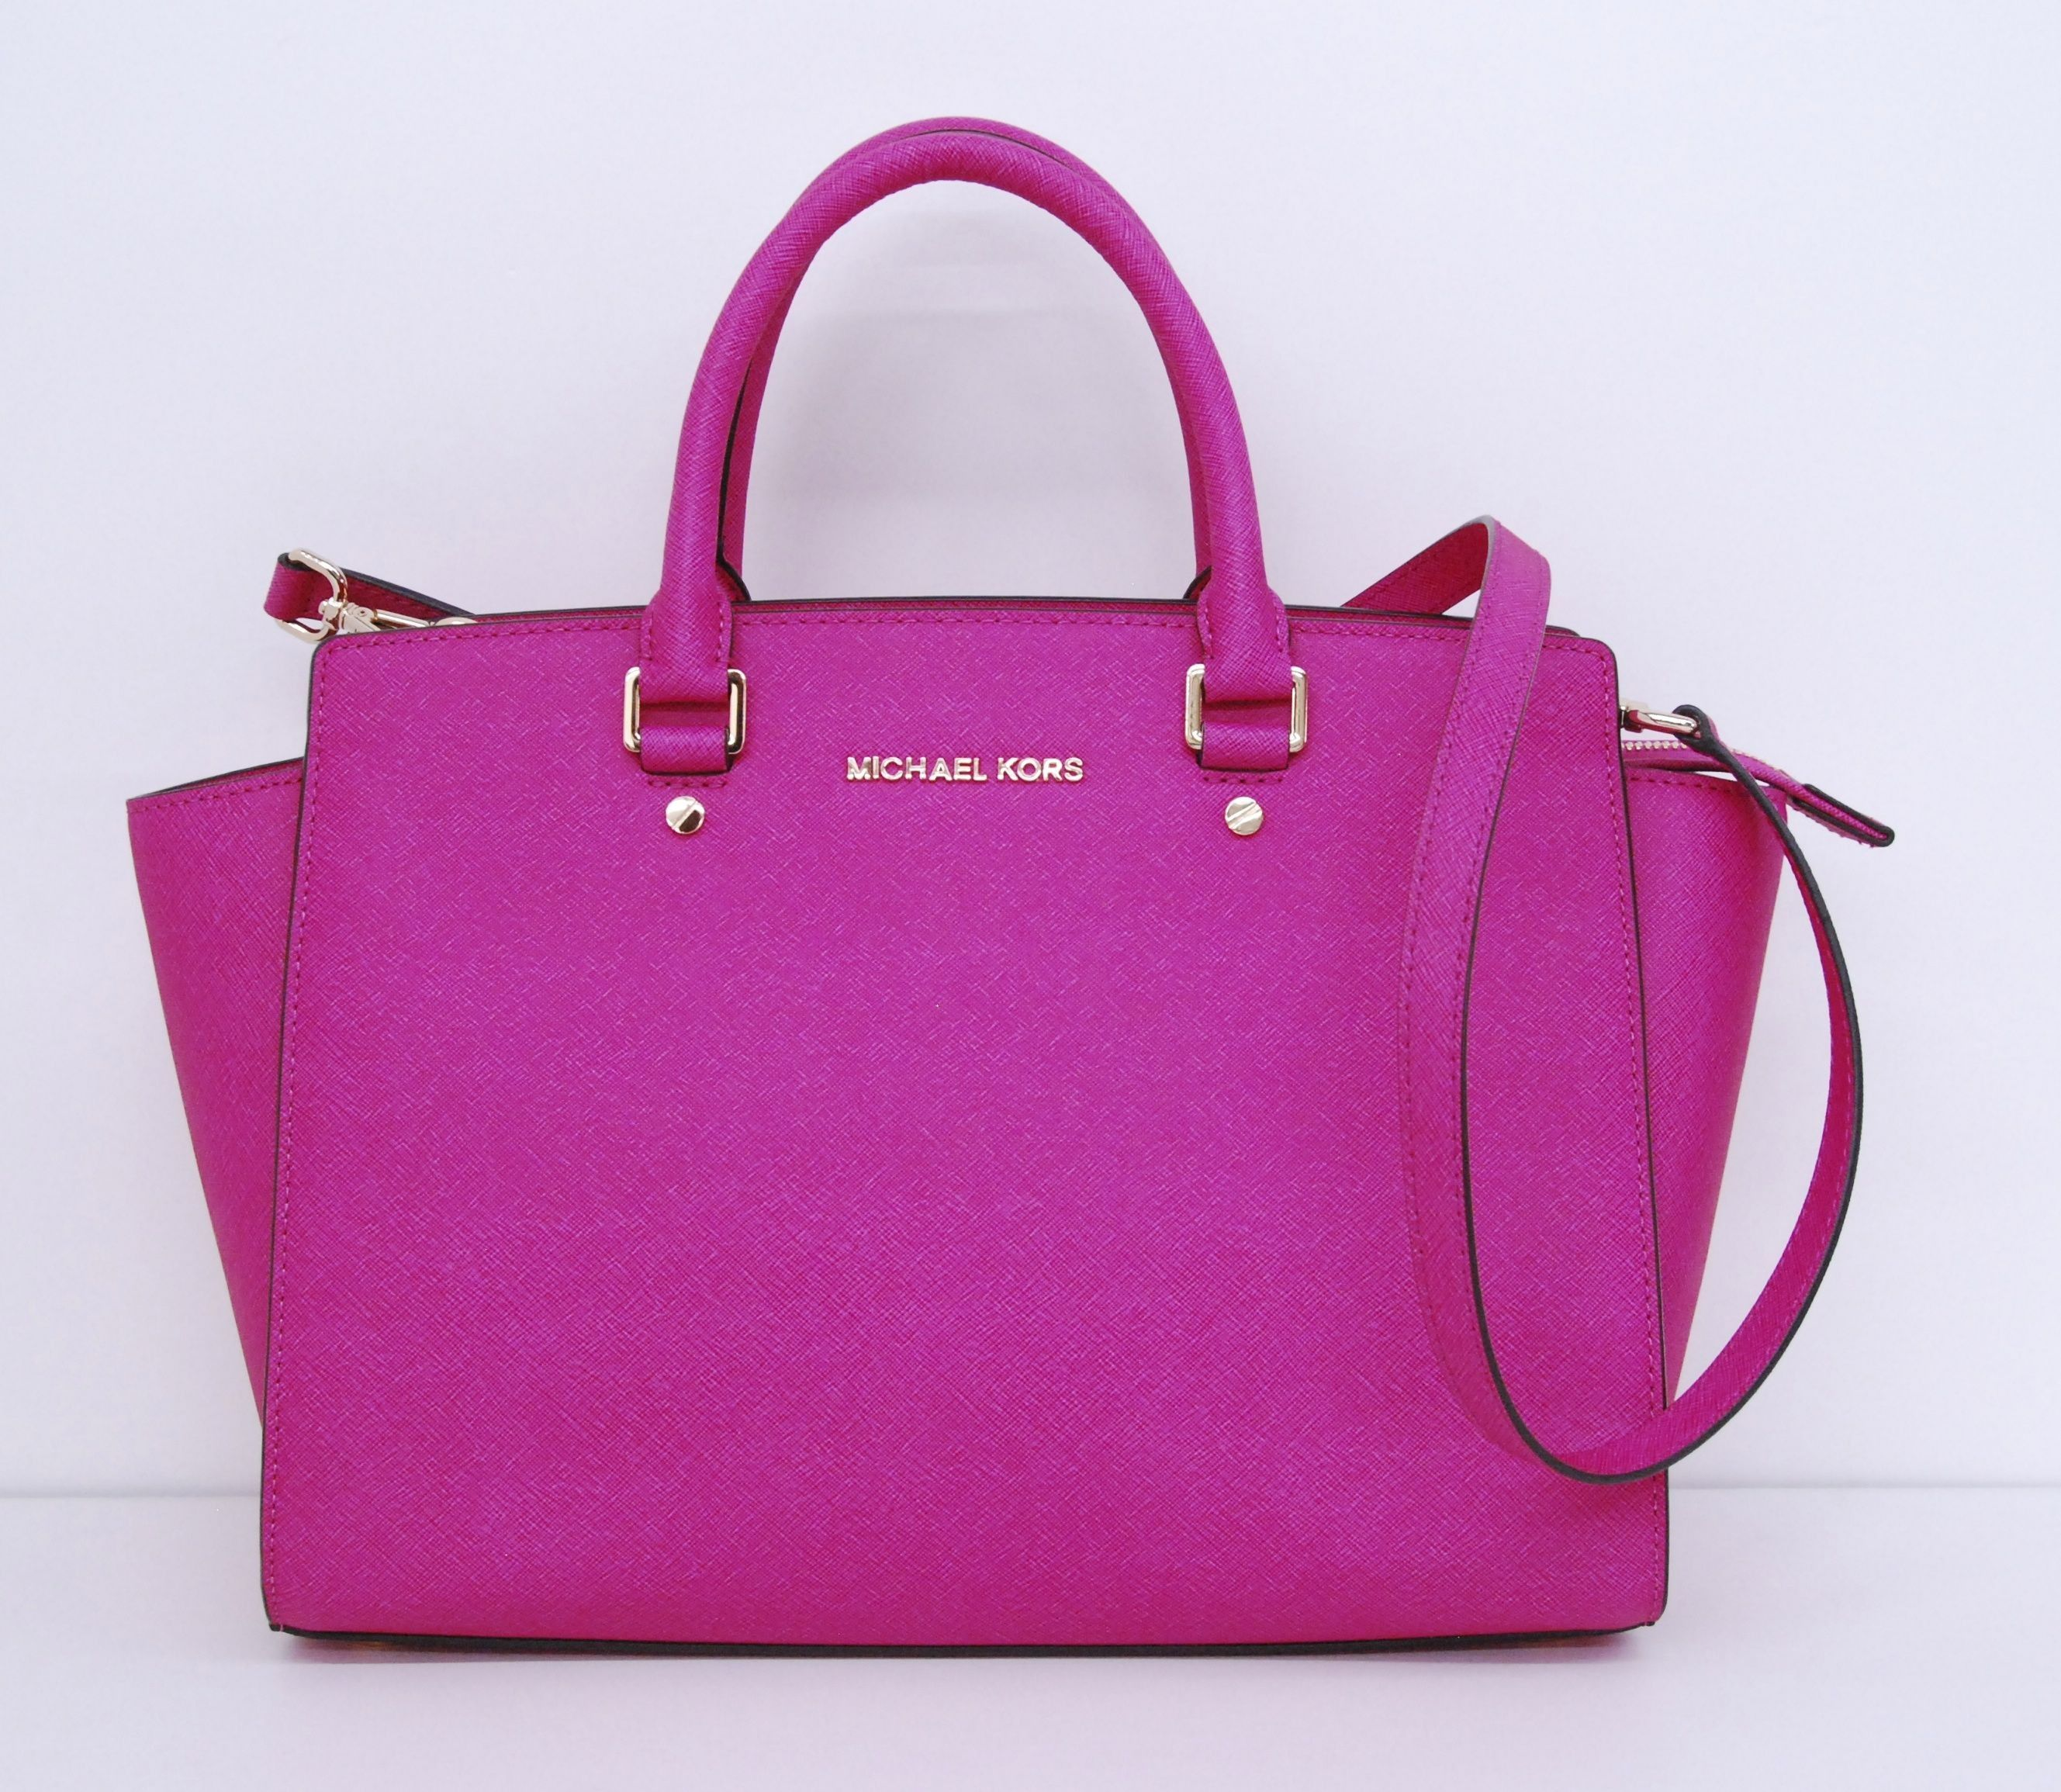 94d4cf21cfe3d Just got this! Magenta Michael Kors Selma bag | Things I like ...